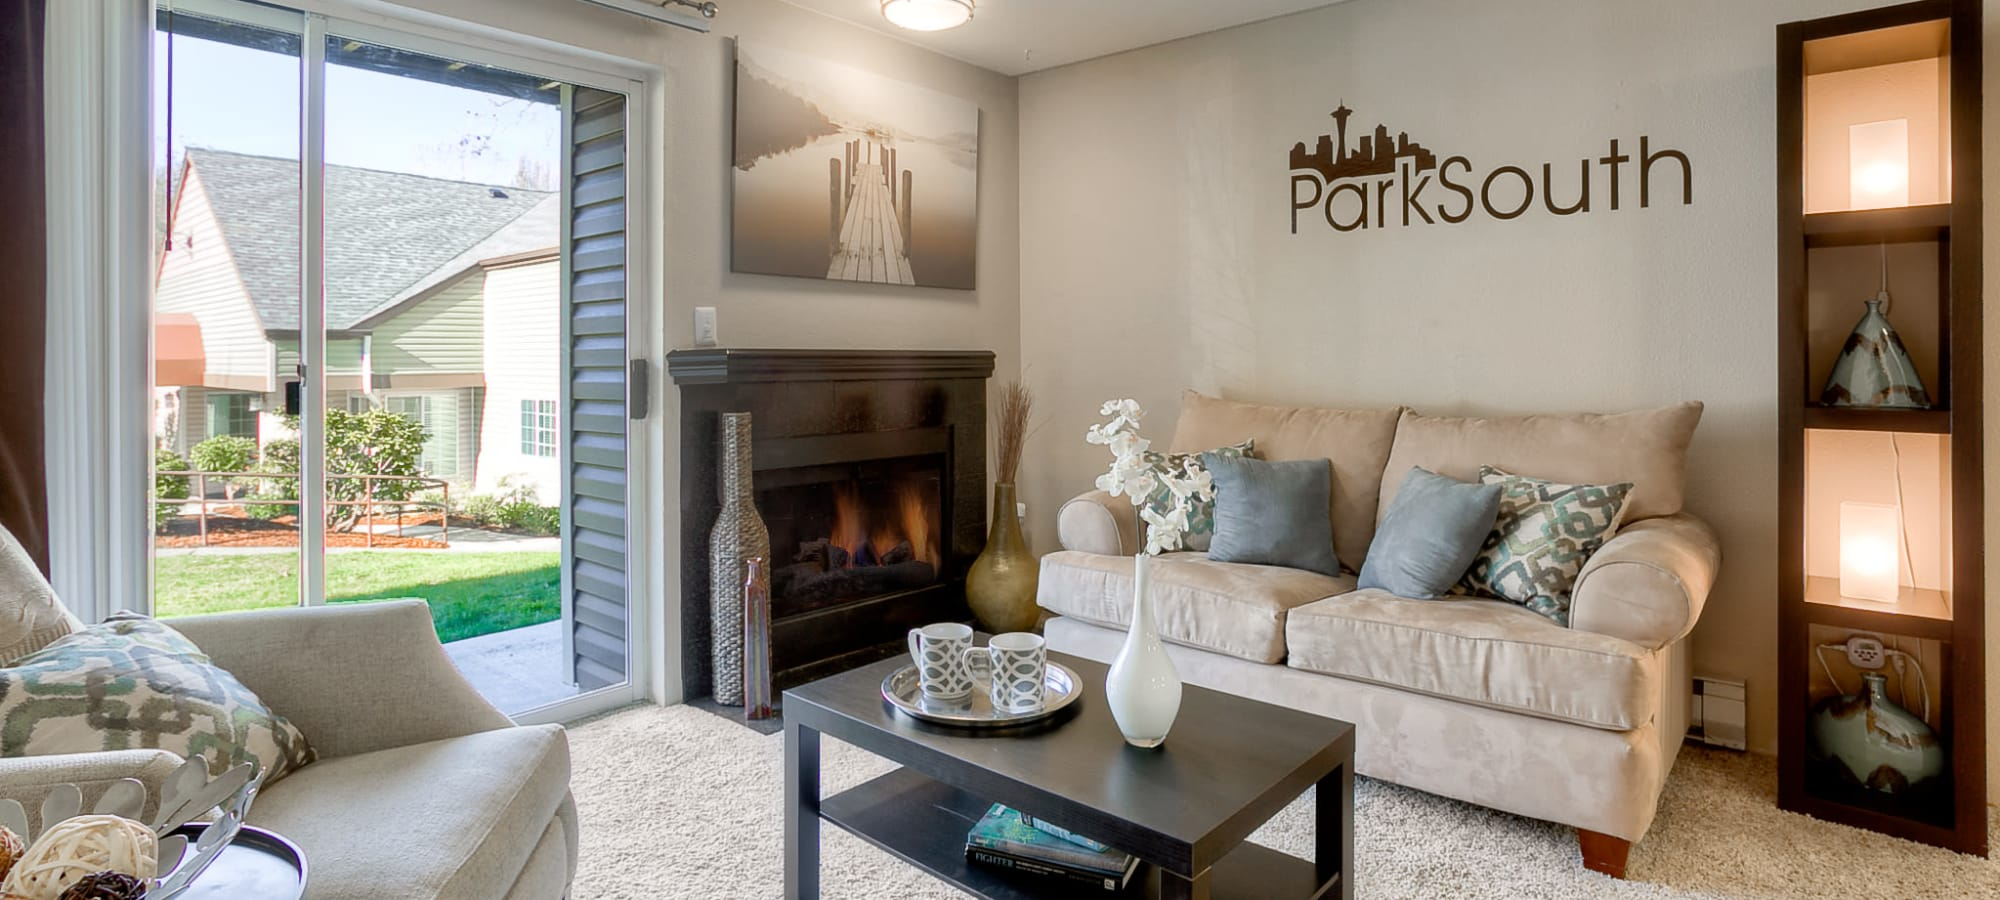 Park South Apartments in Seattle, Washington